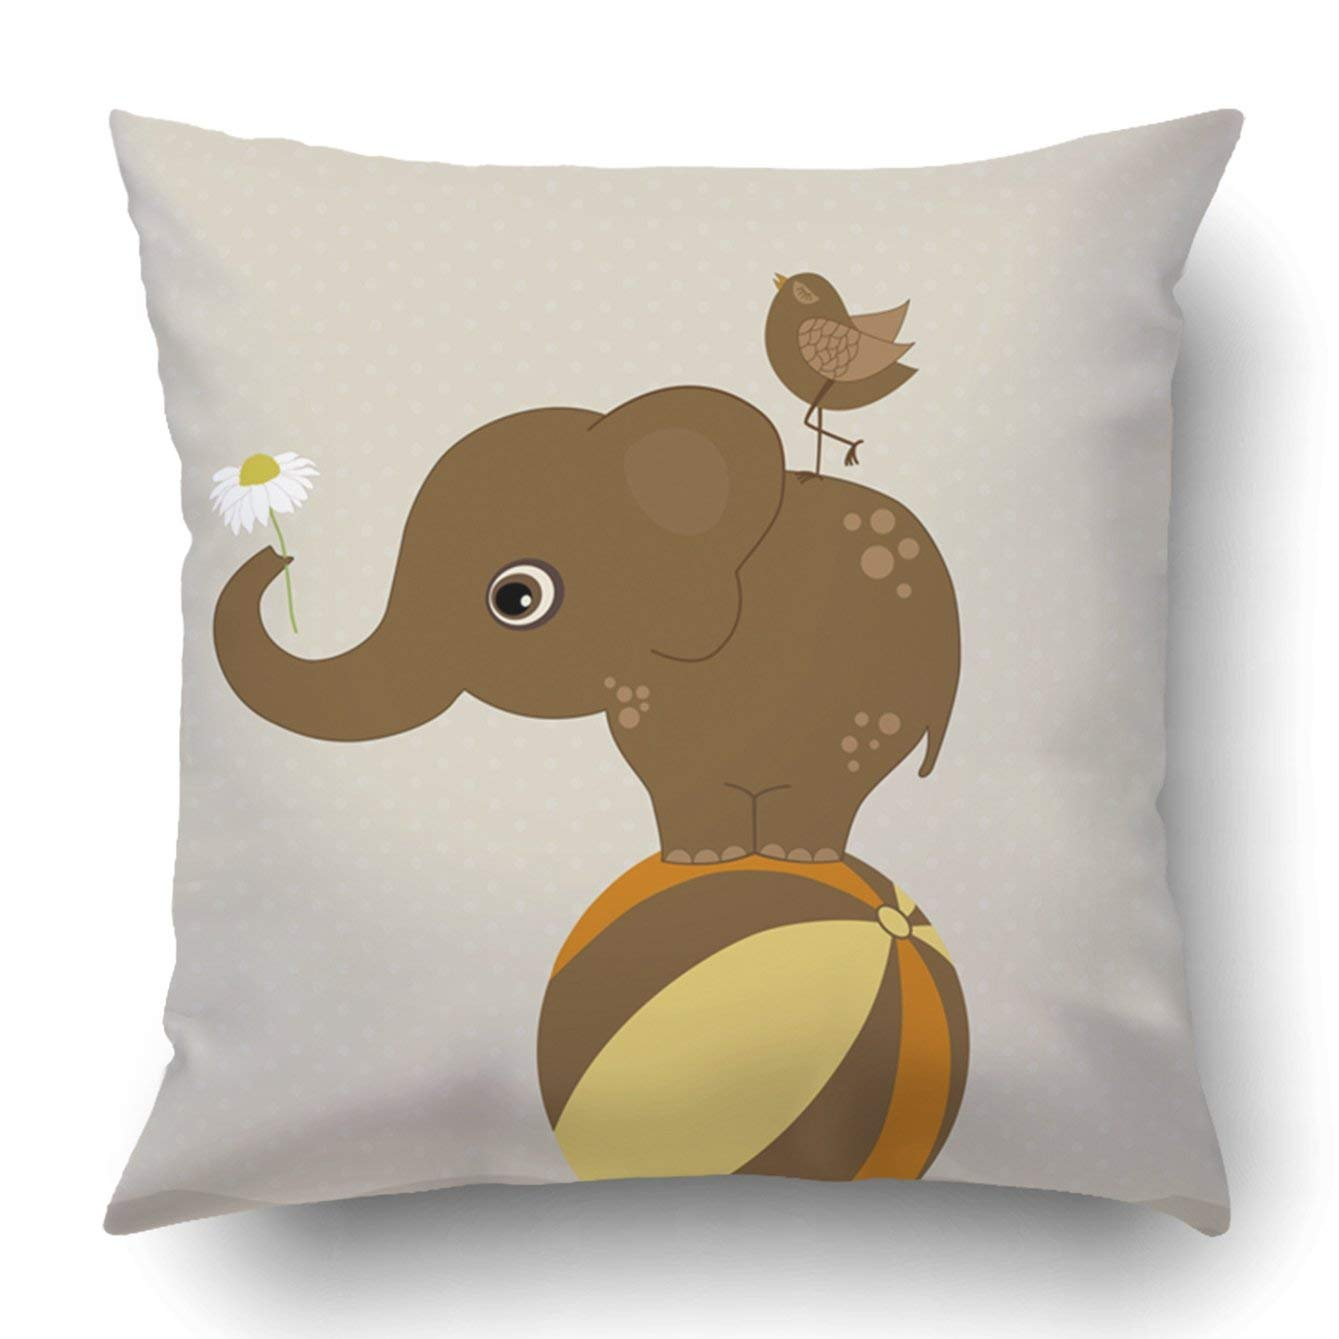 BPBOP Elephant on the ball with a bird on beige Pillowcase Throw Pillow Cover Case 16x16 inches